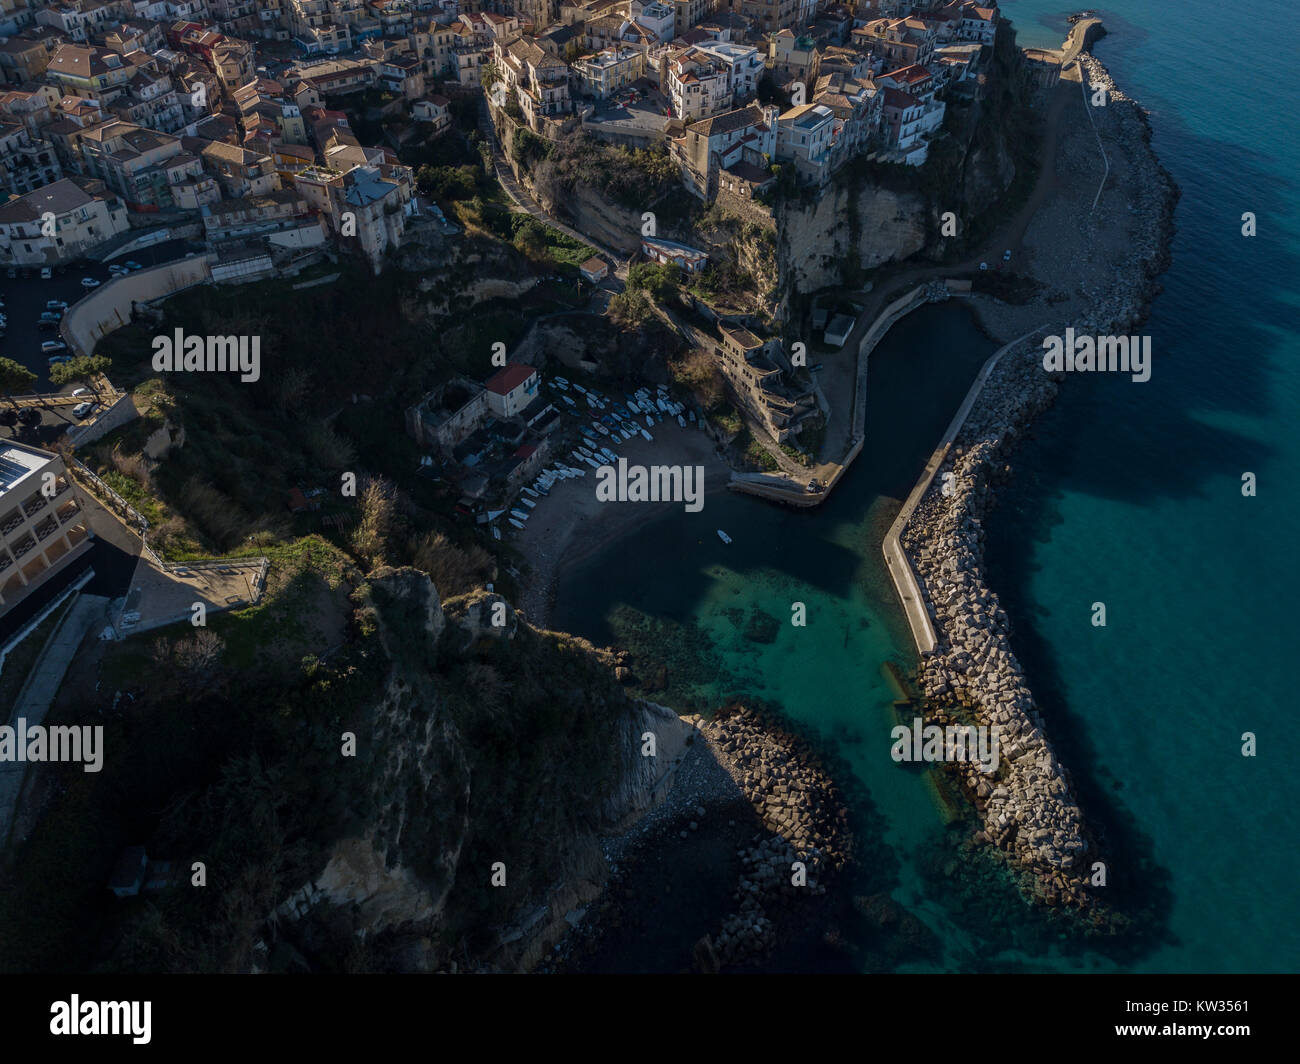 Aerial view of Pizzo Calabro pier castle Calabria tourism Italy